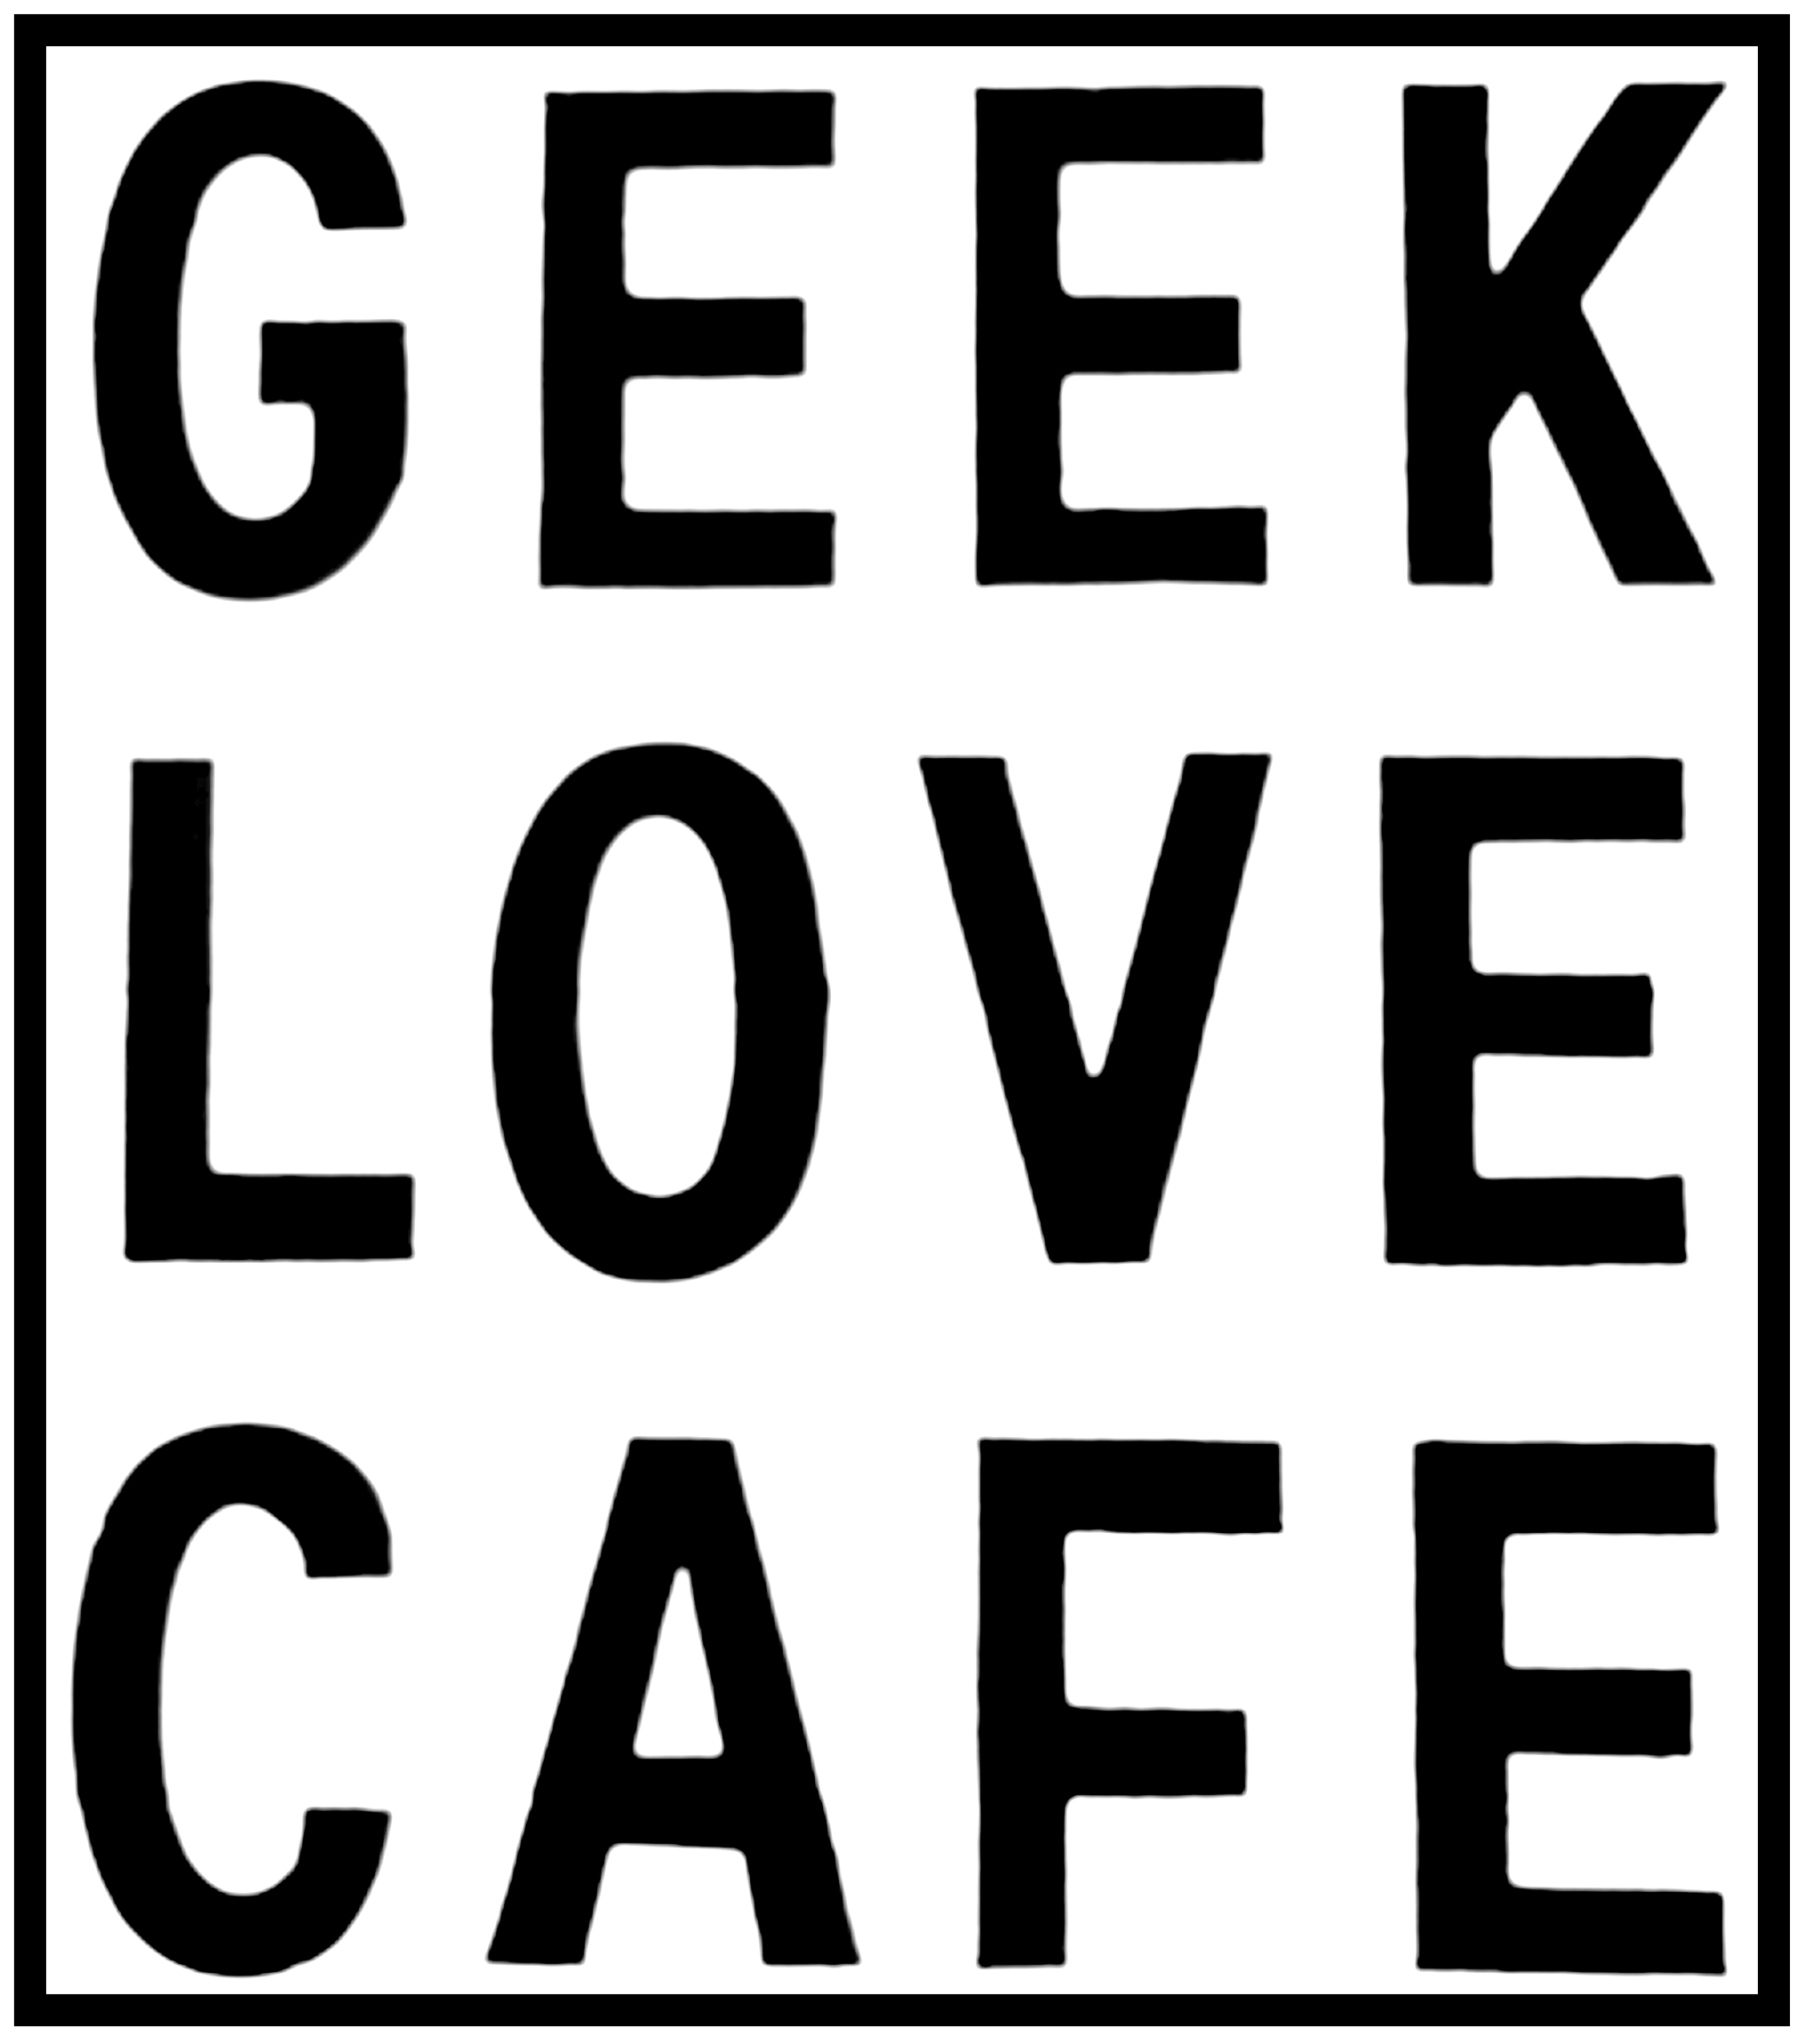 Geek Love Cafe Words logo.png